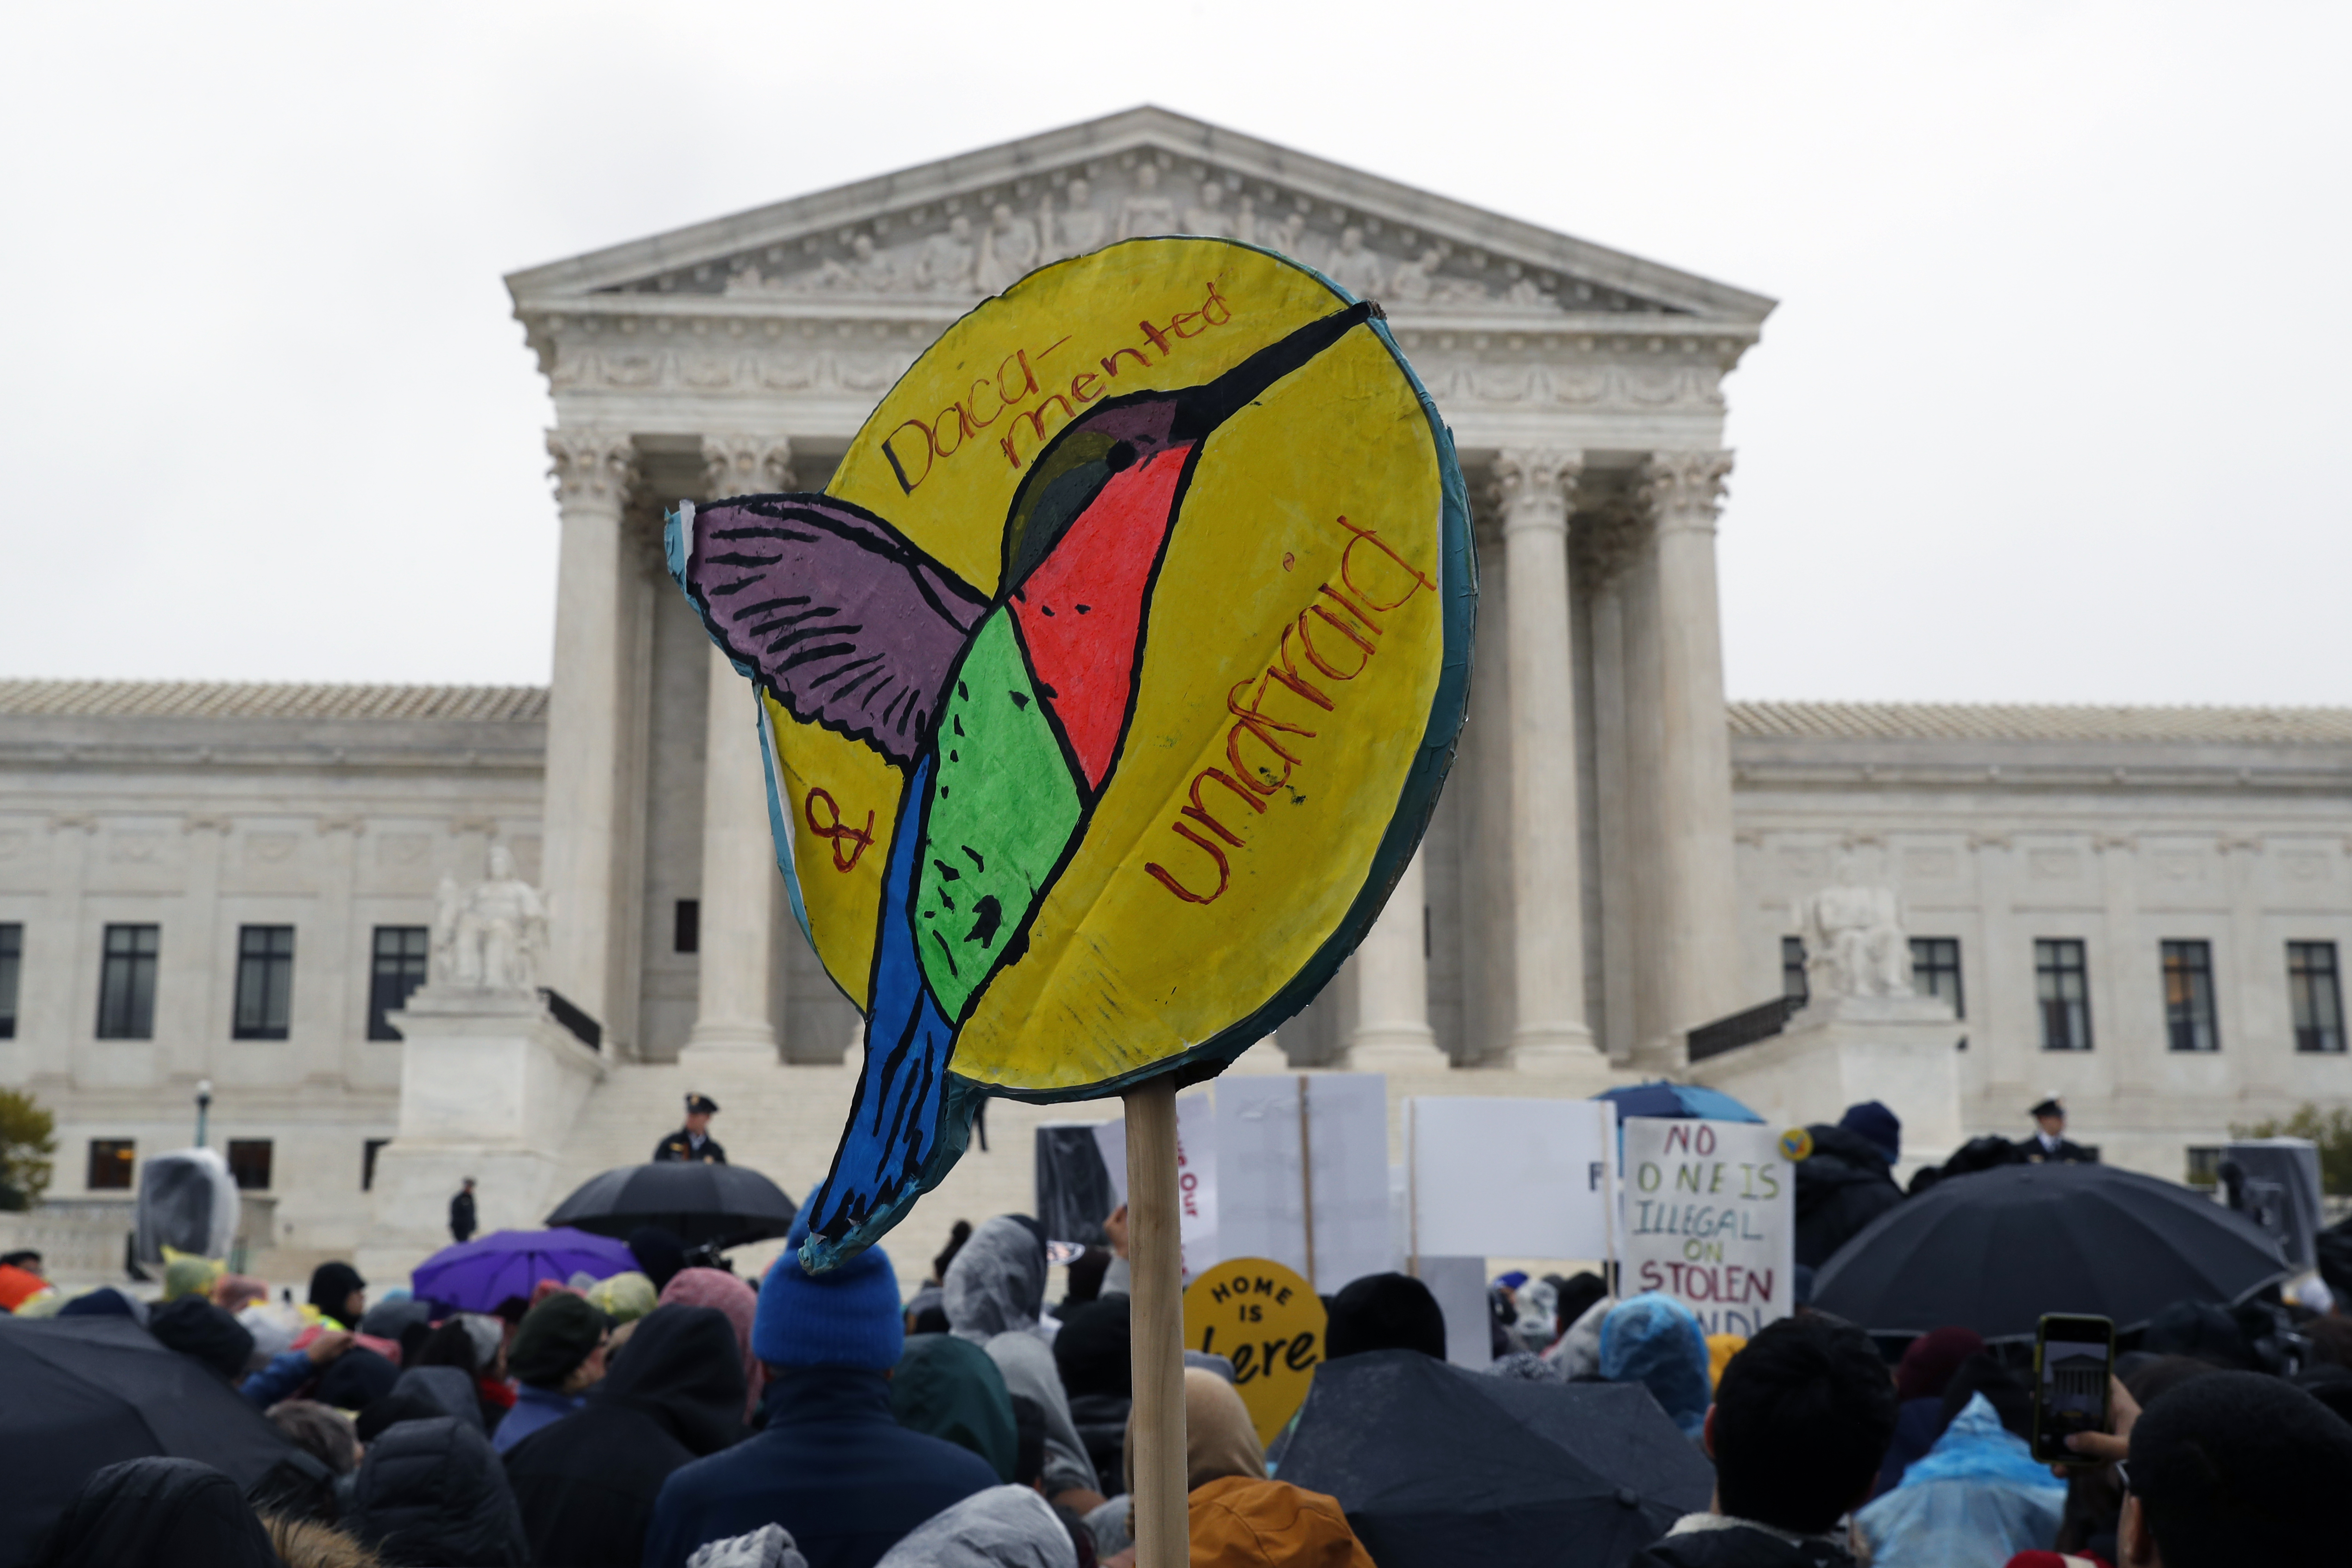 DACA Protections For 660,000 Immigrants On The Line At Supreme Court